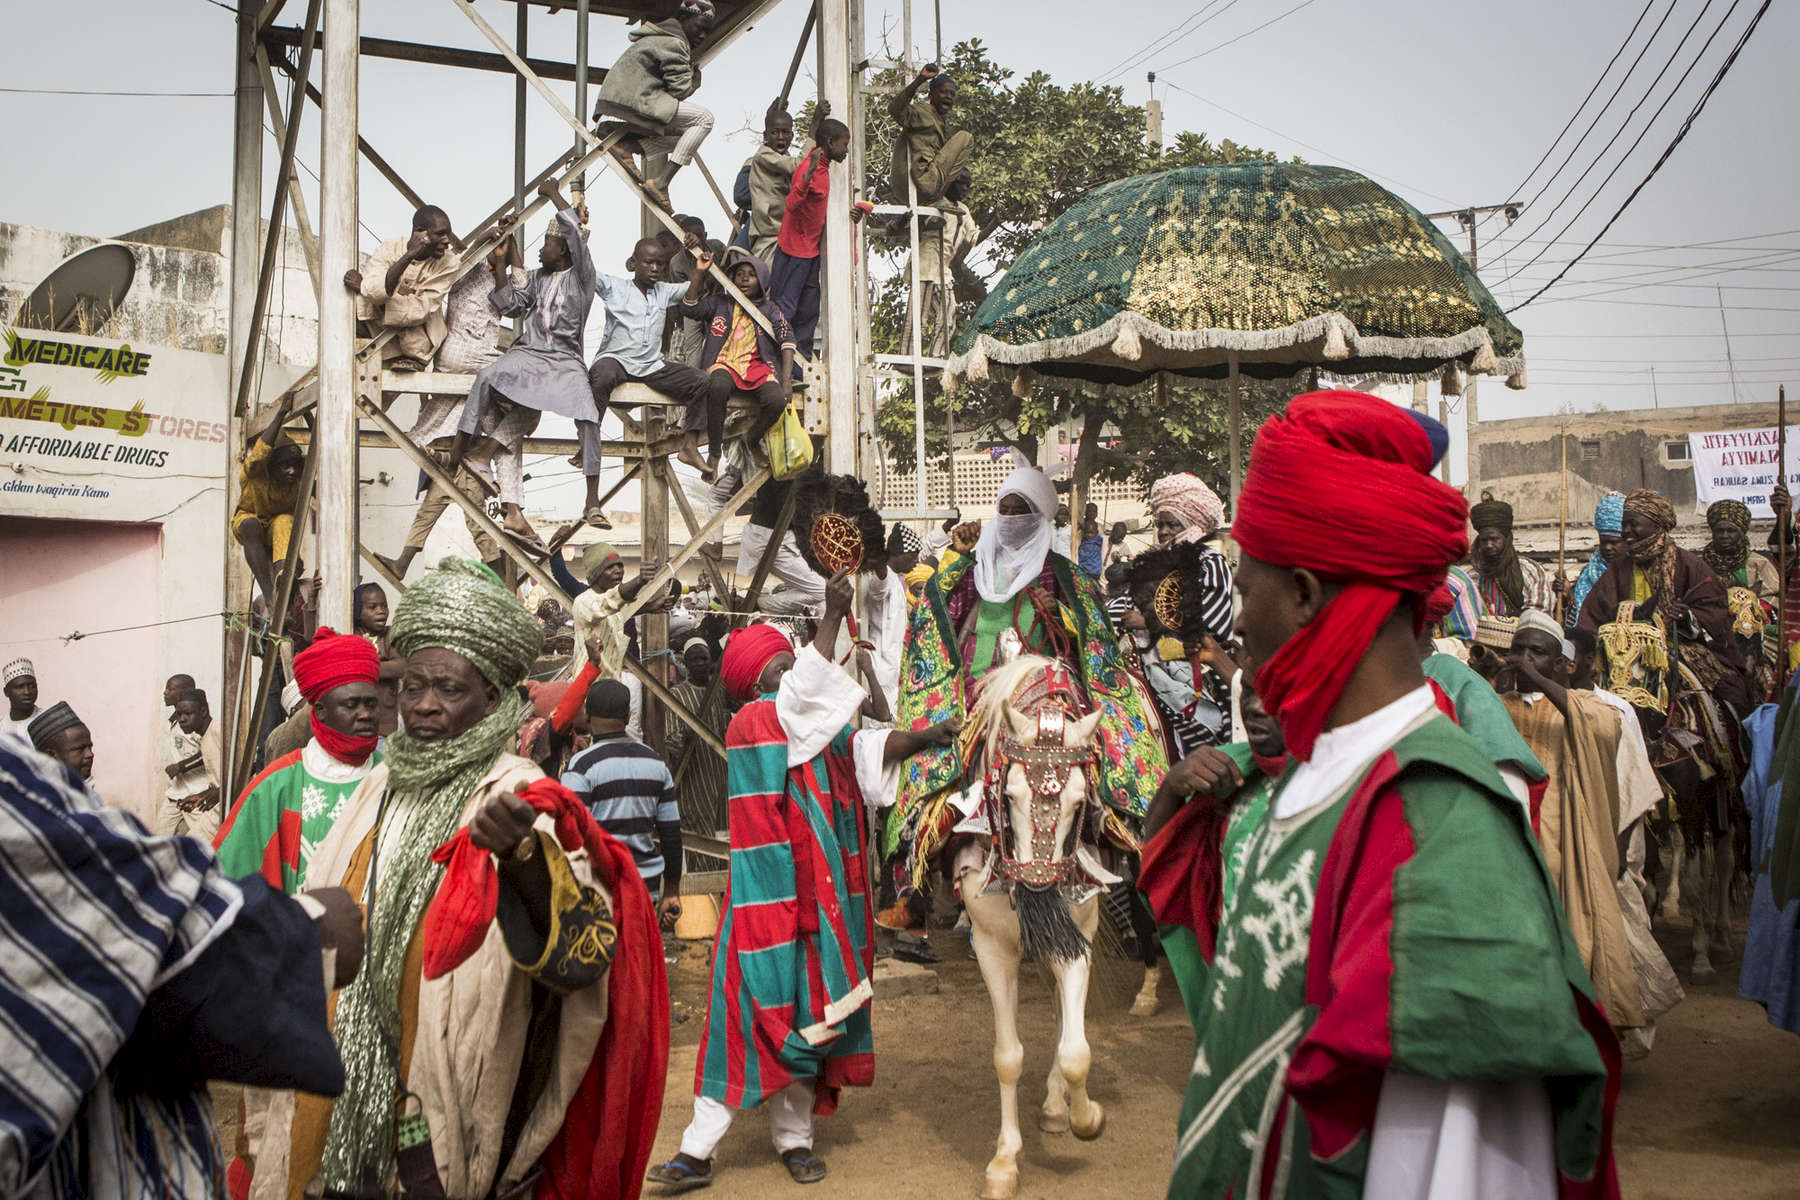 The Emir of Kano, Muhammed Sanusi II, surrounded by his guards and aides, rides his horse to the Fatahul Mubin Islamic School graduation through the Old City in Kano, NigeriaThe Emir of Kano is the fourth most powerful religious leader in Nigeria ruling the Kingdom of Kano which has been in existence for over 1000 years. The former Governor of the Central Bank of Nigeria, Muhammed Sanusi II, 56, was crowned in 2014, taking over the traditional role as a religious leader but also as an advisor to politicians, government employees, village chiefs and even settles disputes between individuals.Seen as a modern leader, Sanusi II has been a champion for girls education, women rights, job creation, development as well as the re-industrializing Kano State. But, as his methods of communication became just as advanced by using Facebook and Twitter via his aides, coupled with his radical thoughts on modern islam, many felt that he was being influenced by the west and a backlash began. Since then, the Emir has reduced/eliminated his involvement in social media as well as softened his approach with the conservative scholars.